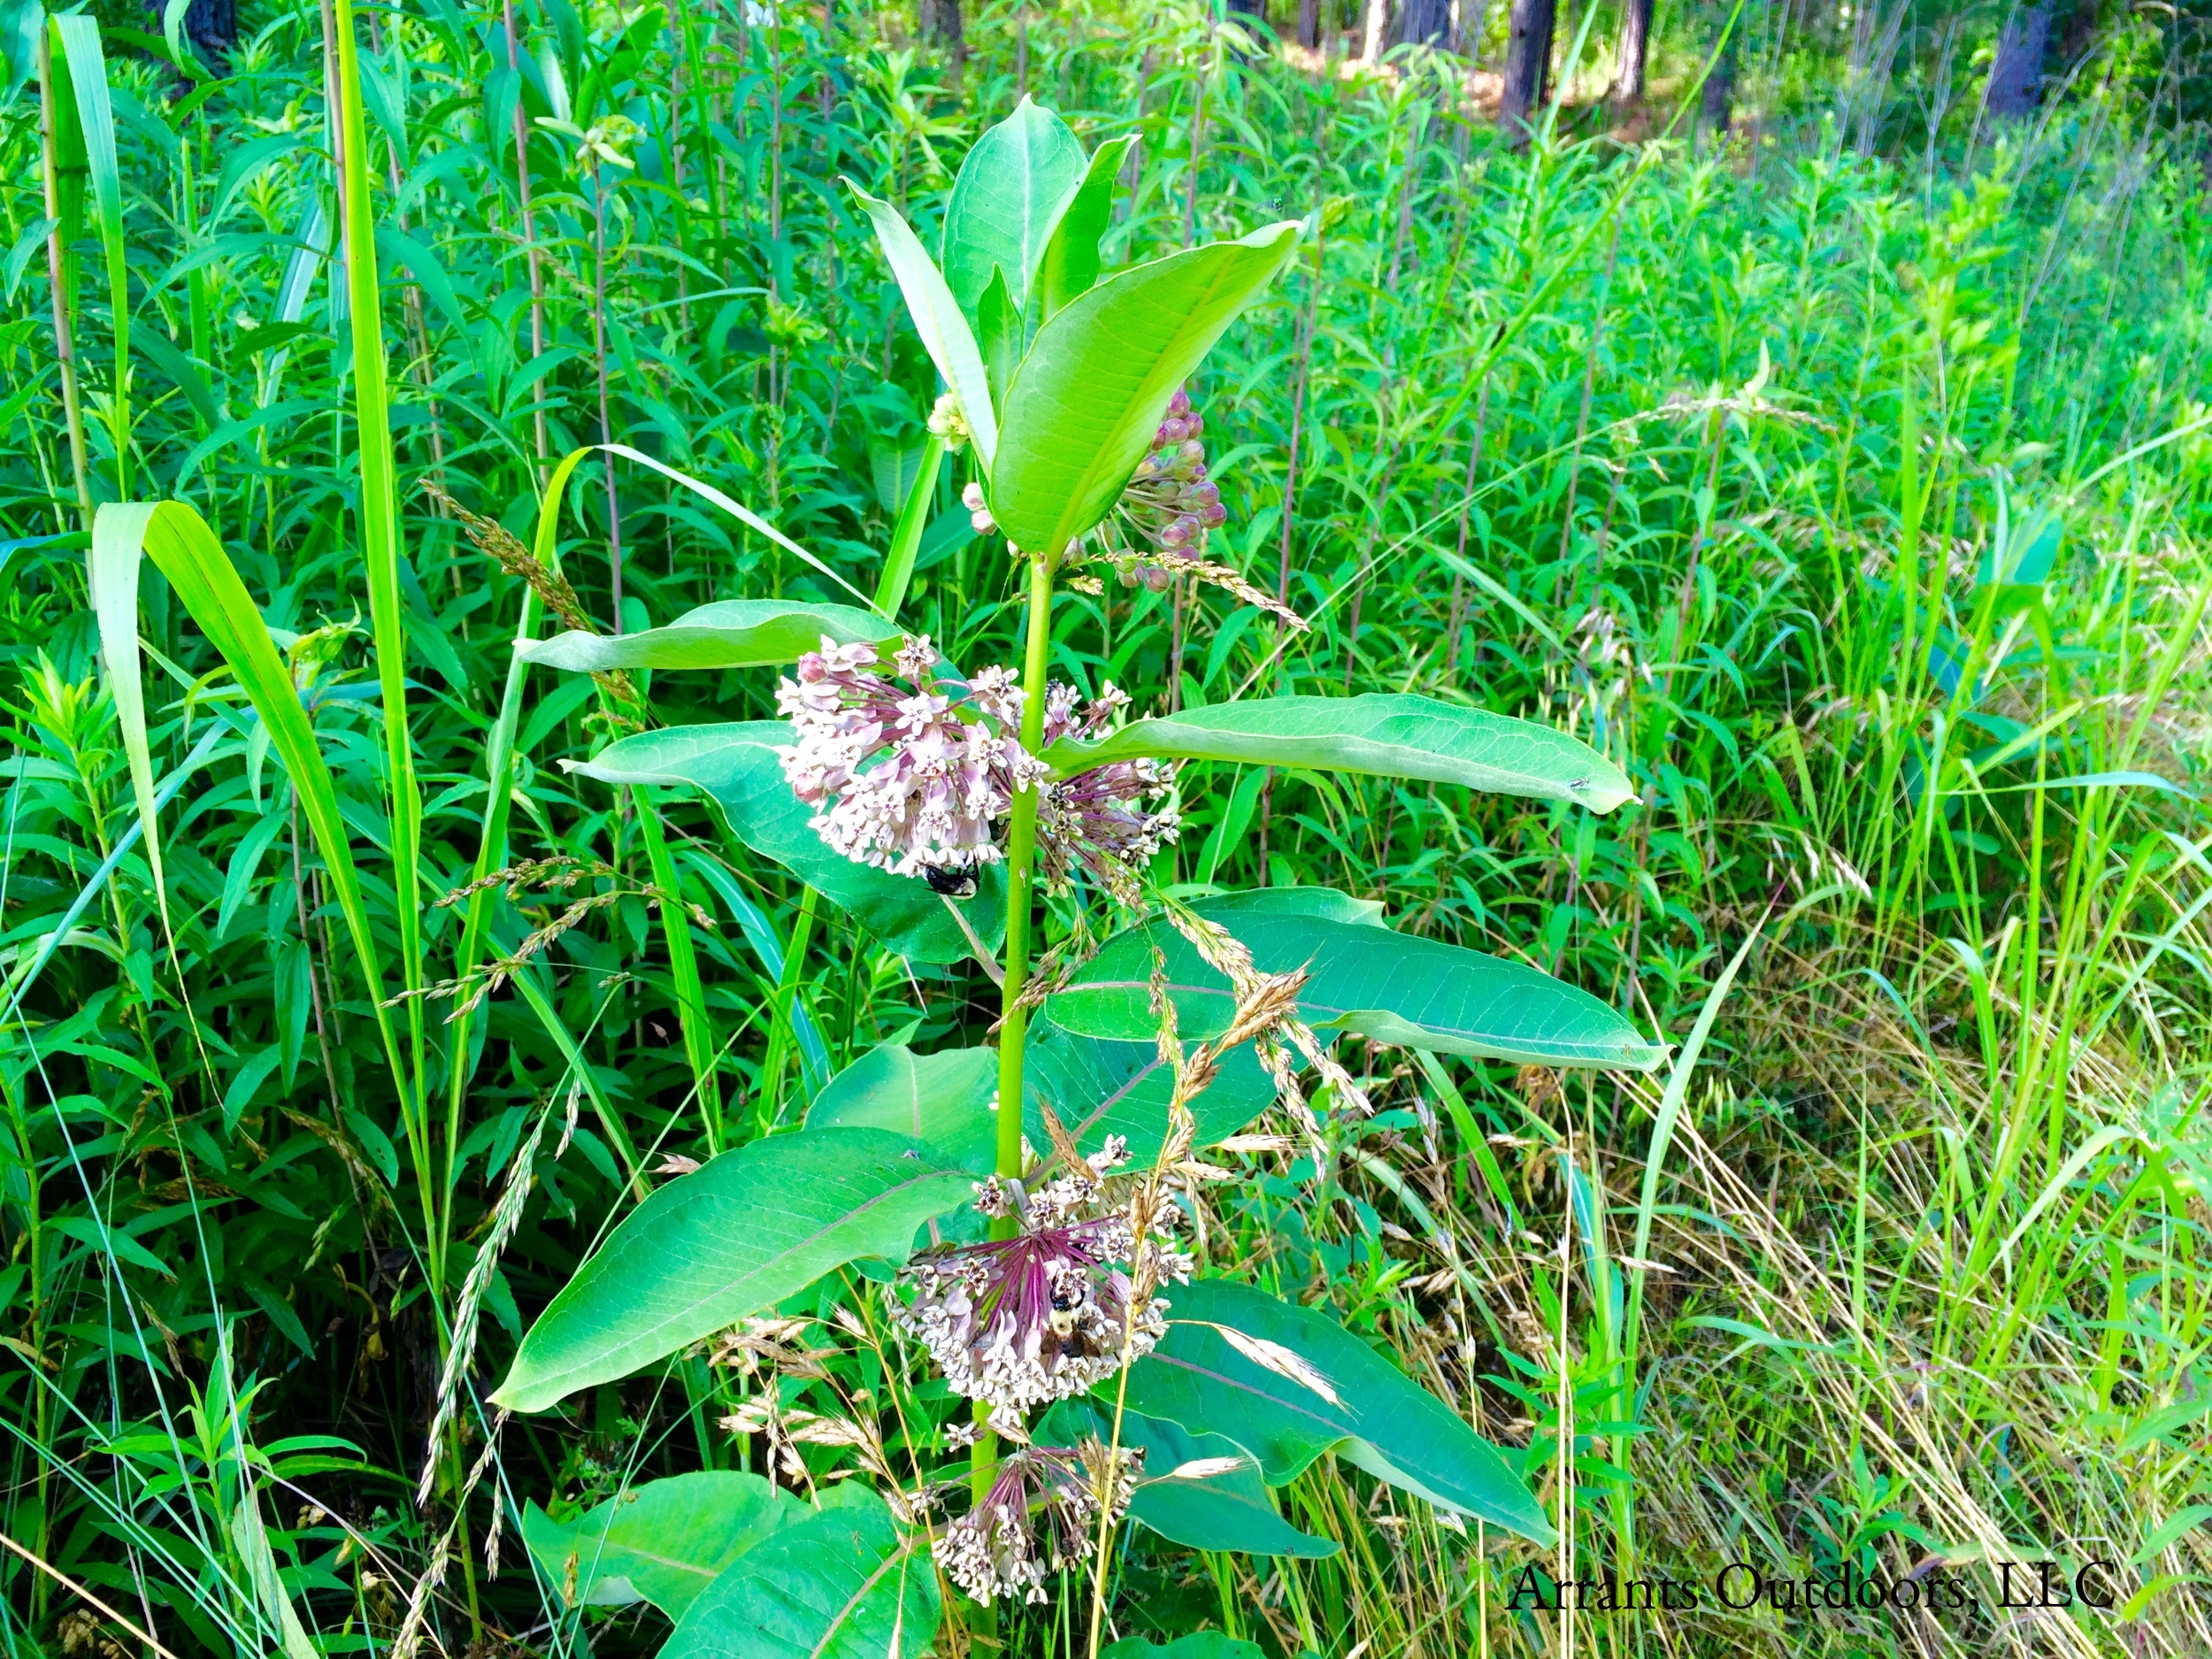 Common Milkweed (Asclepias syriaca) blooming trailside.  (Click to enlarge)